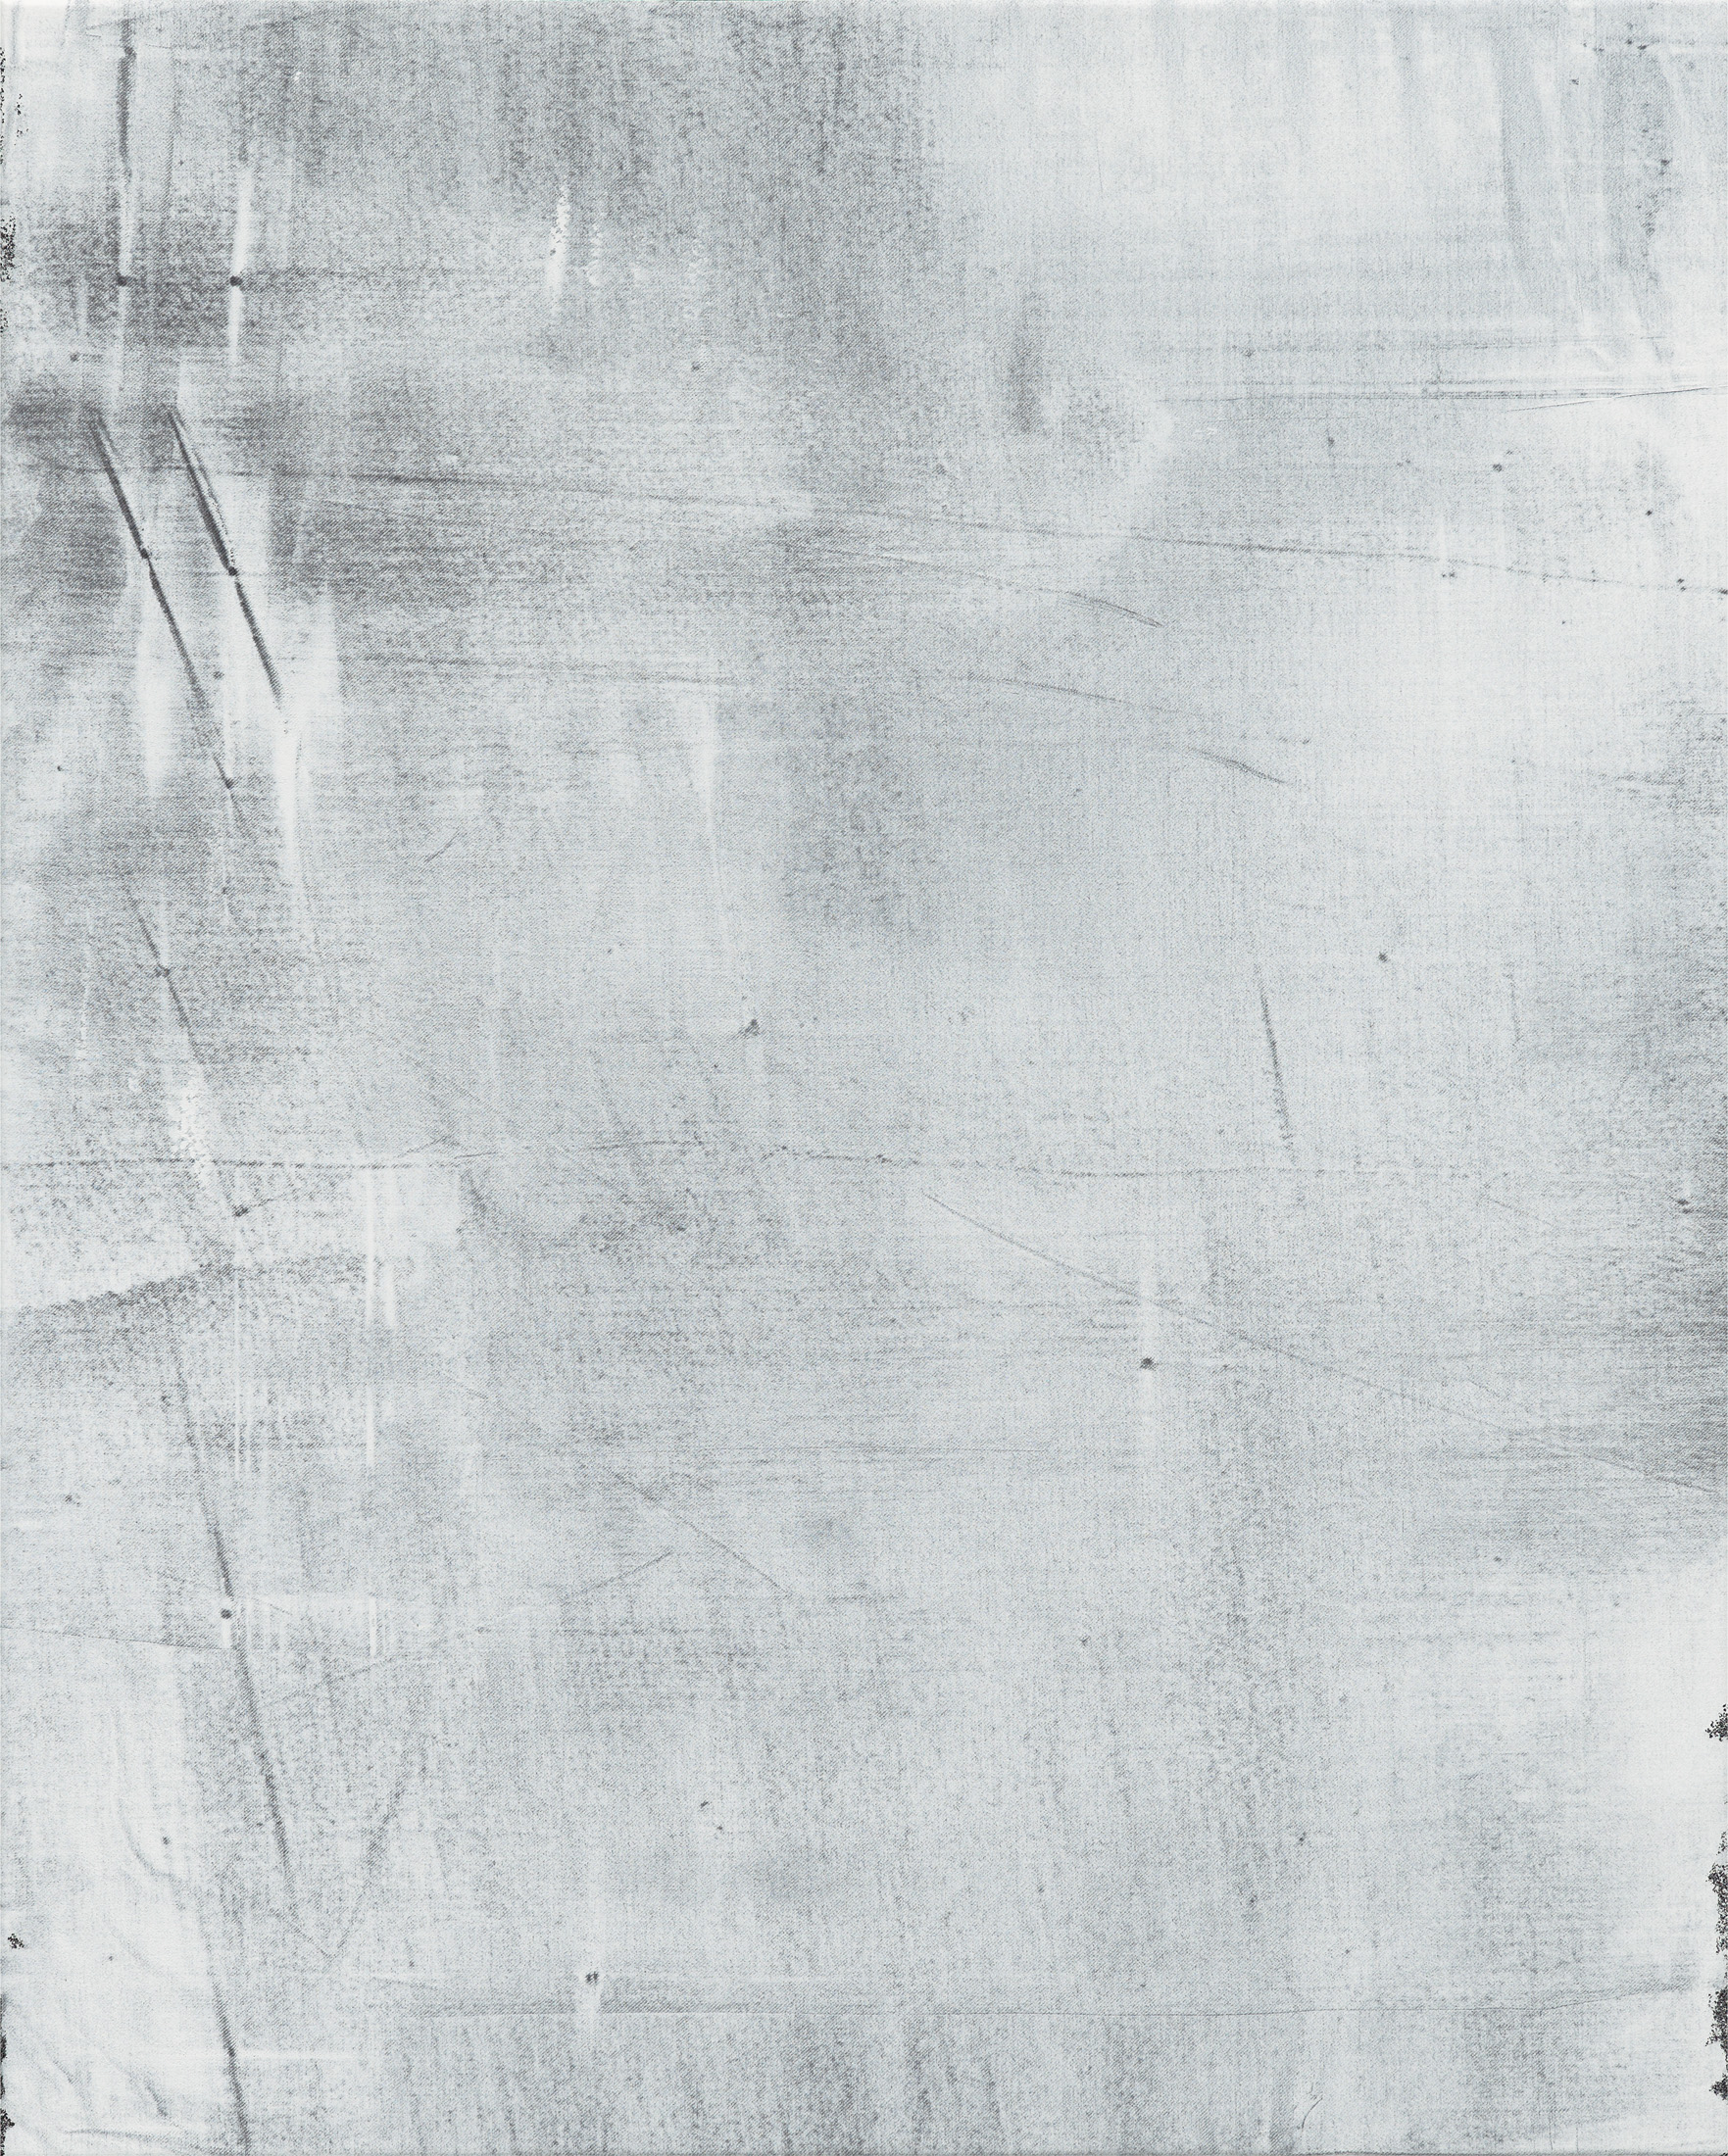 Untitled, 2013 (detail) diptych, acrylic on fabric 81,5 x 130 cm - 32 1/2 x 51 1/8 inches